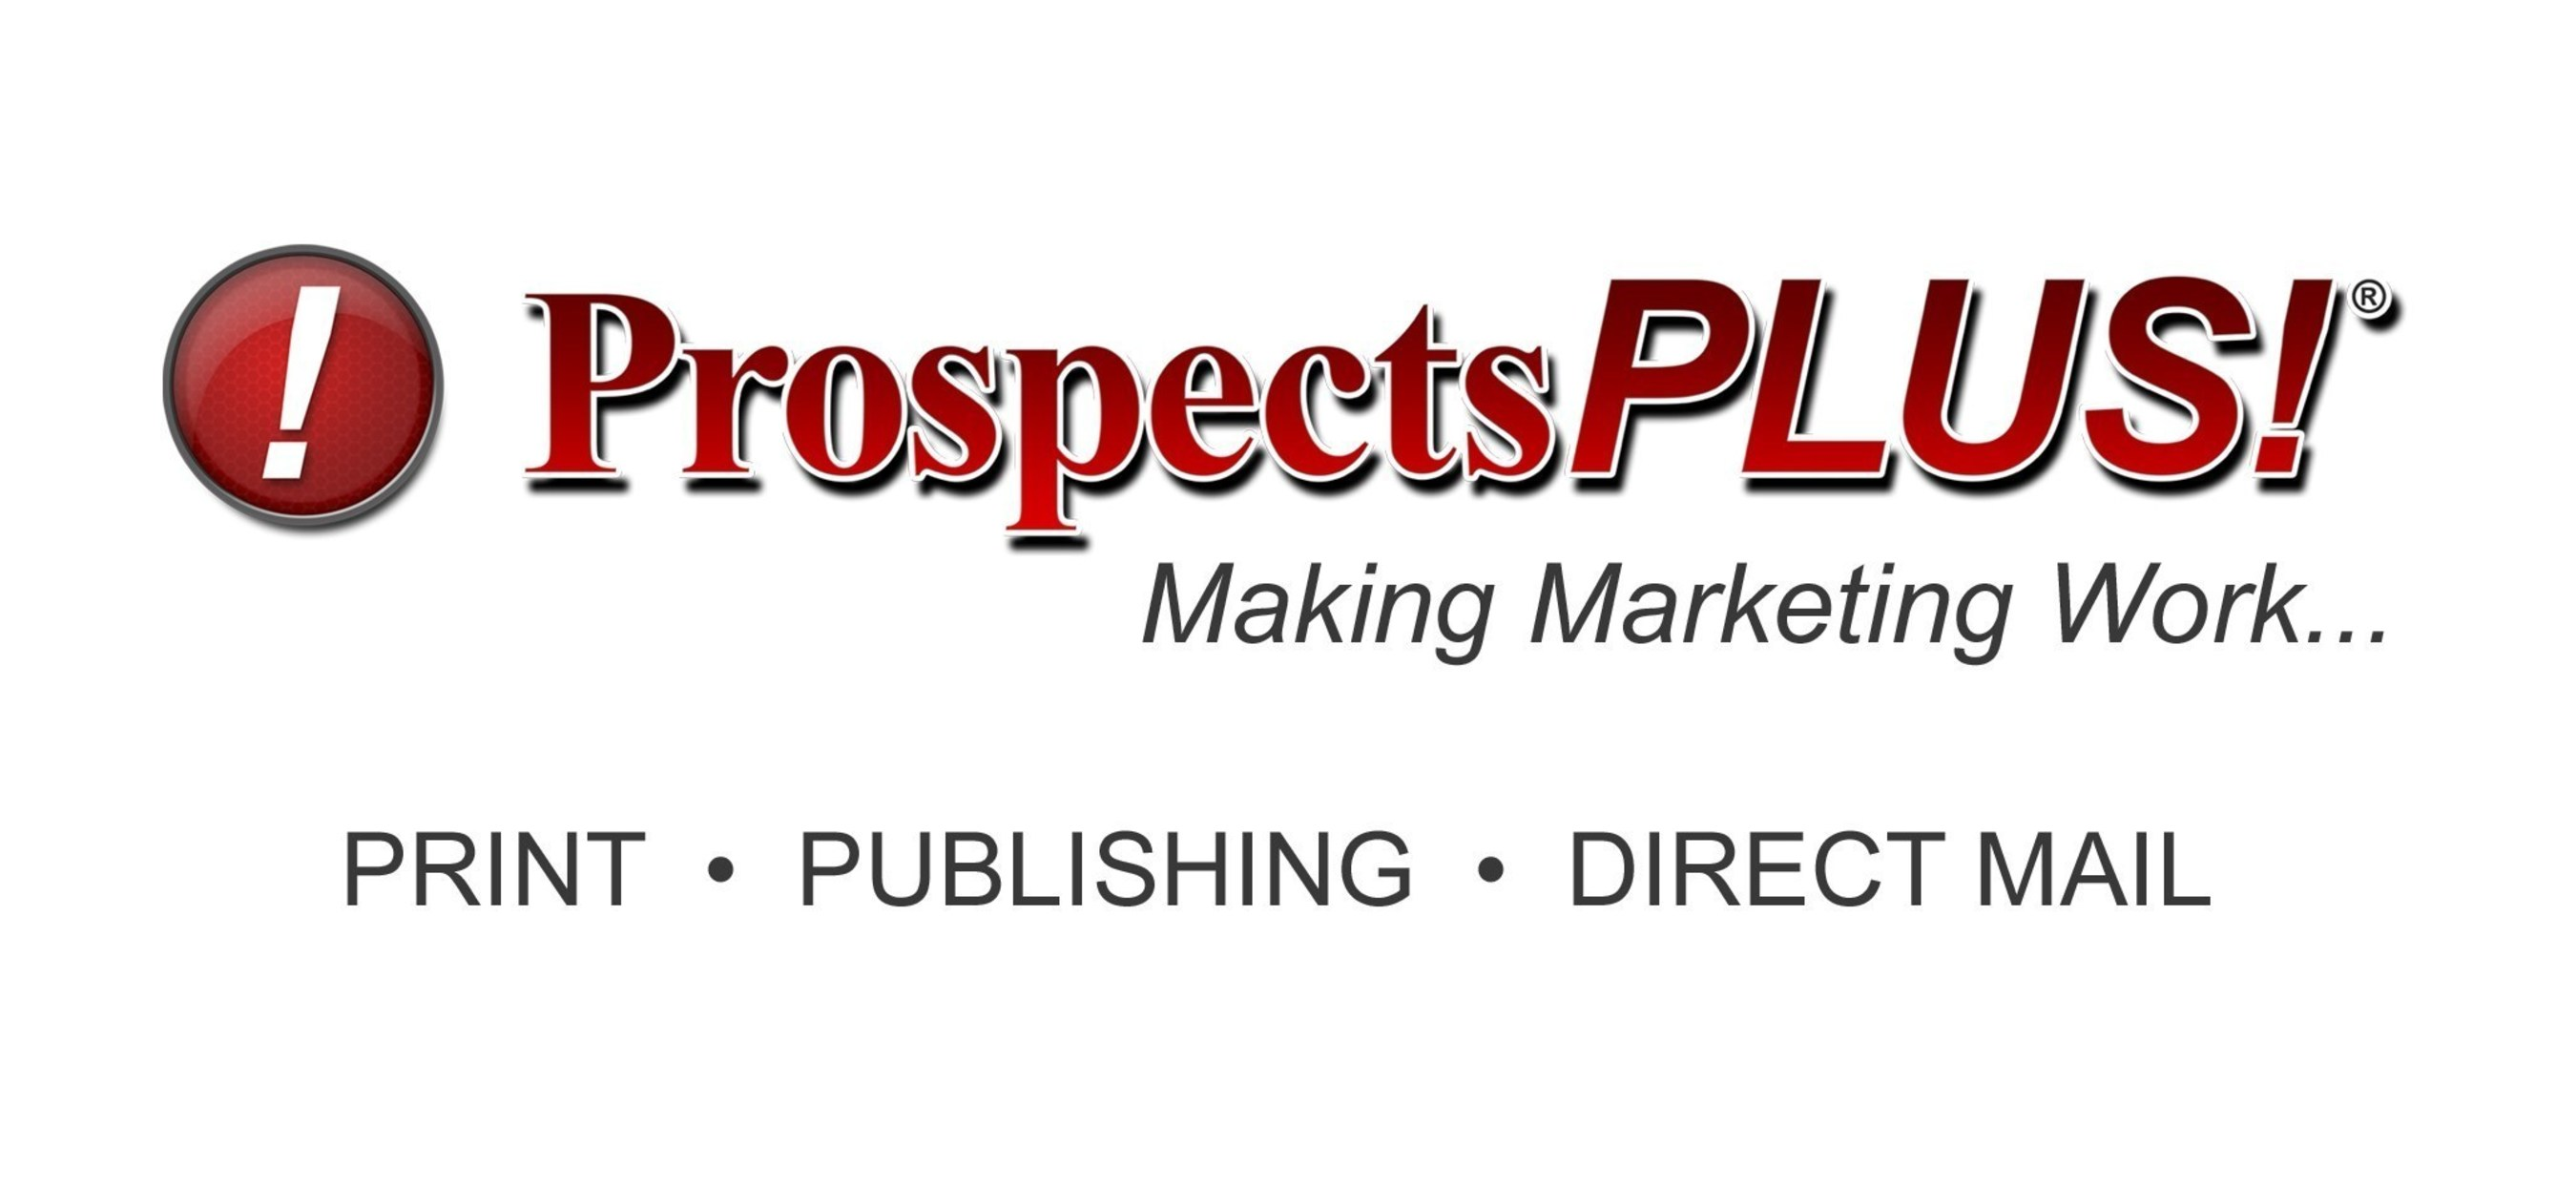 ProspectsPLUS! Direct Mail Marketing. Design, Print, & Mail in Minutes. Create postcards, door hangers, ...